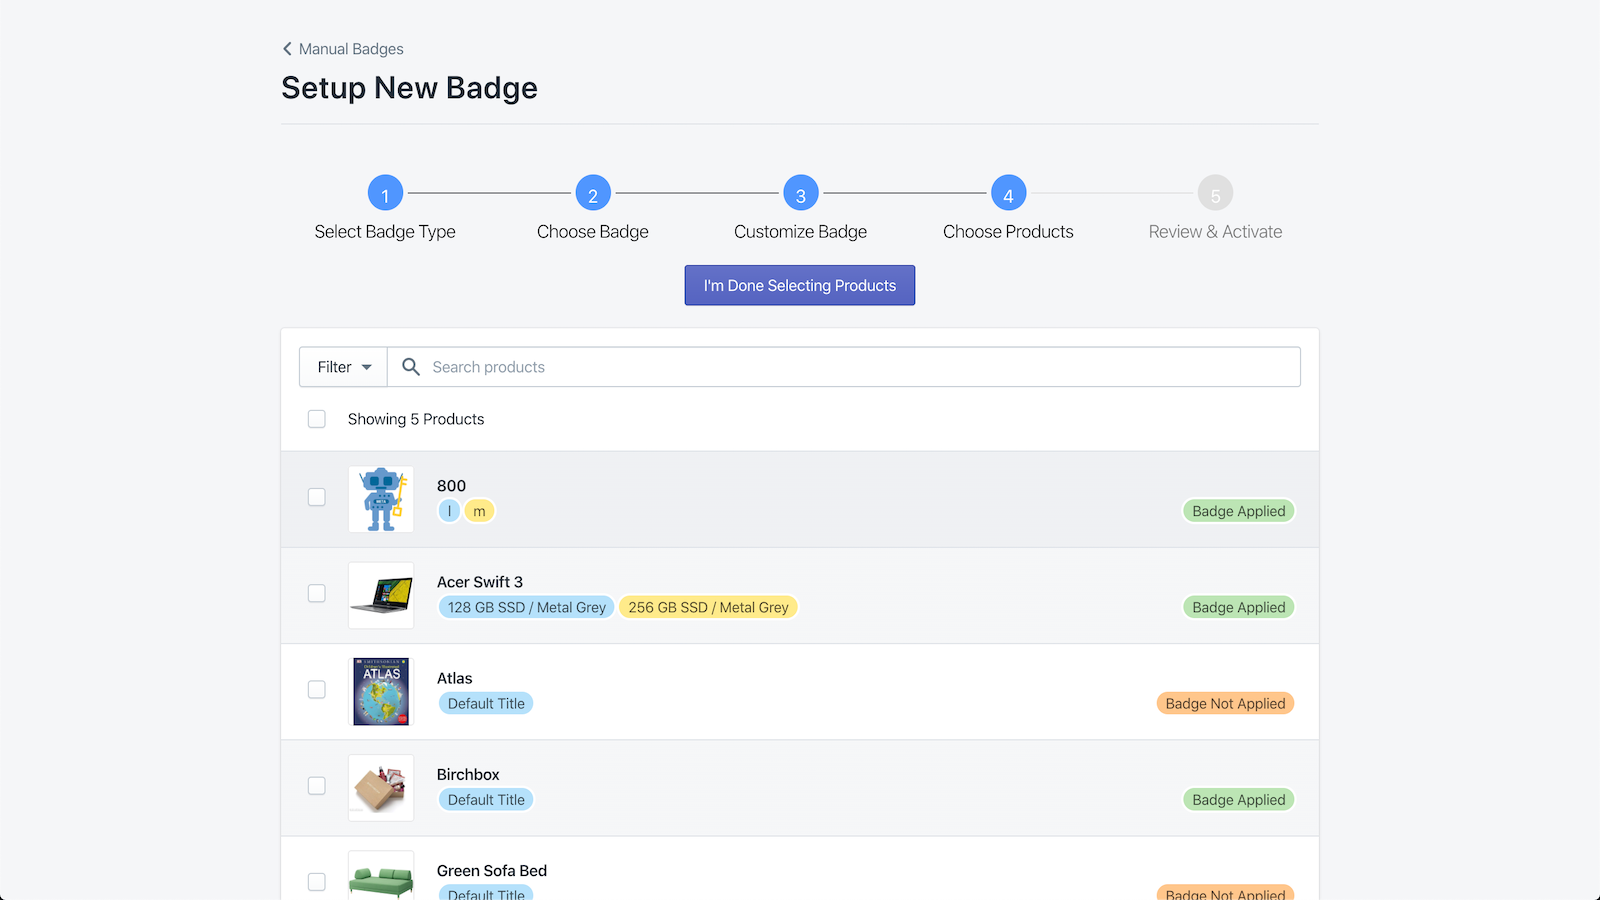 Badgify Apply Badges to Products